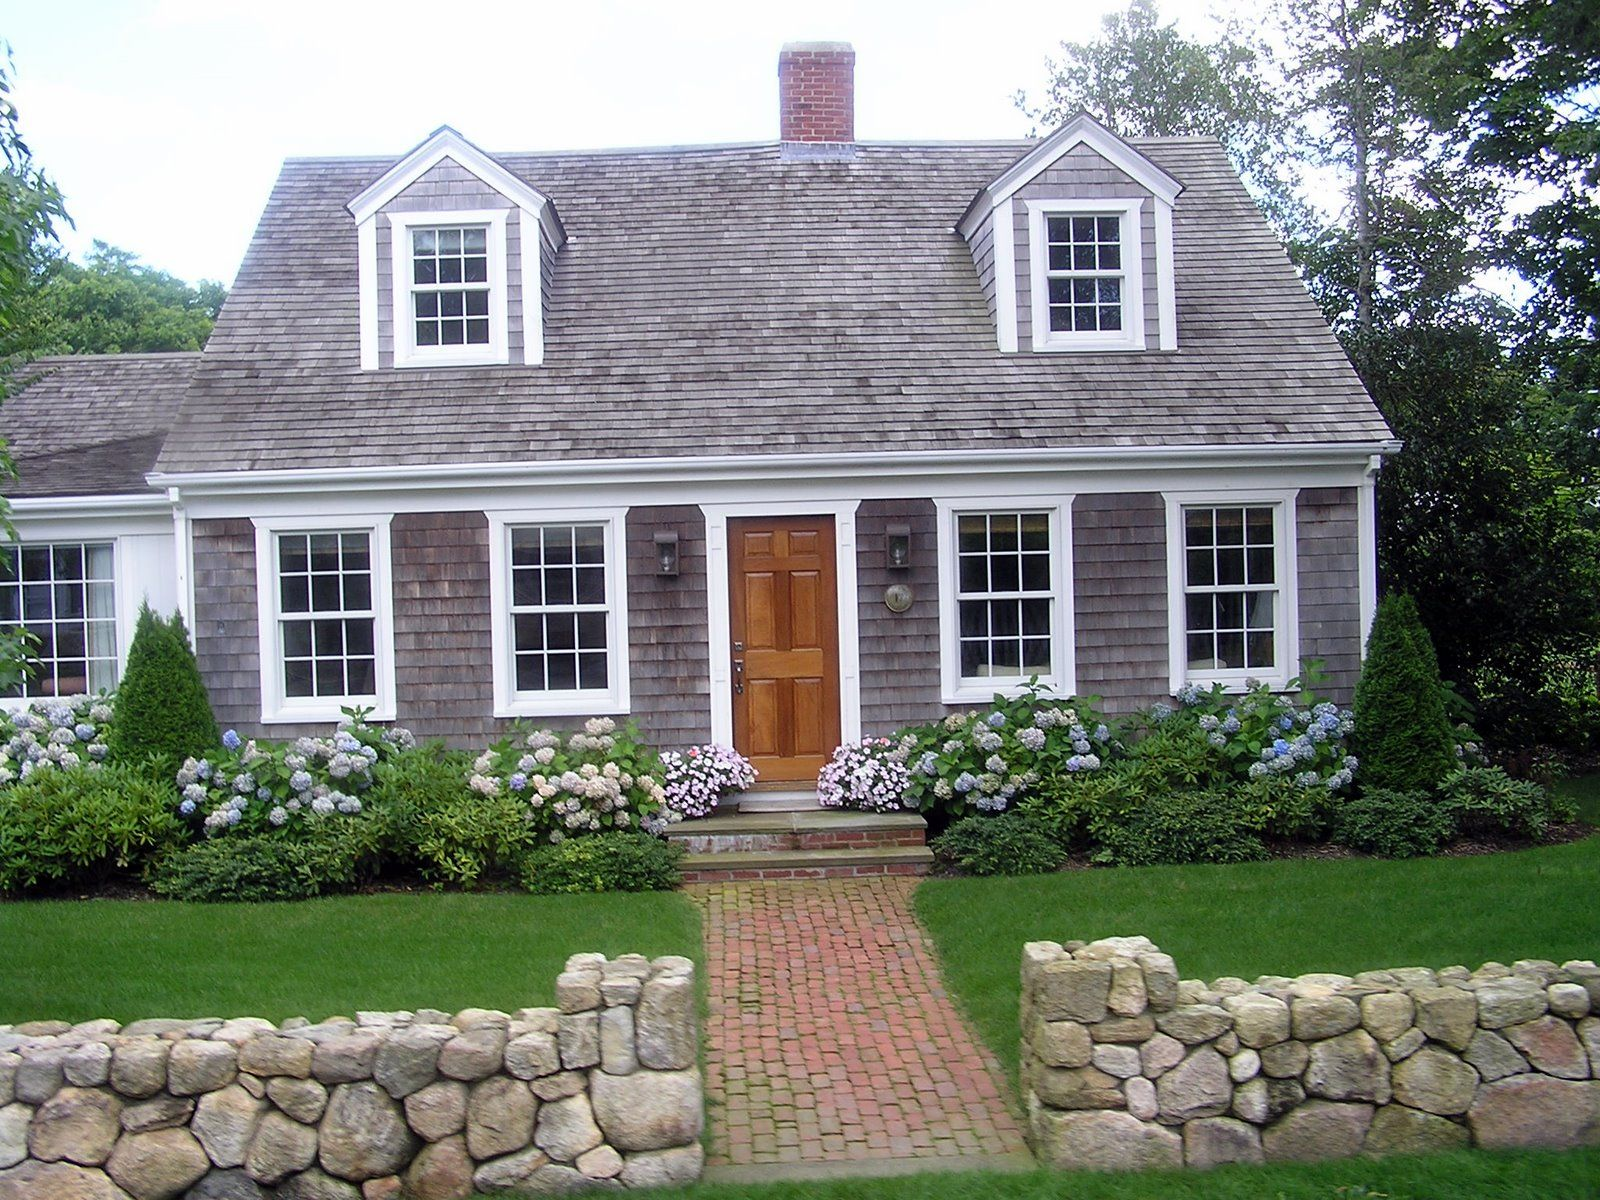 Photo This is classic Cape Cod architecture